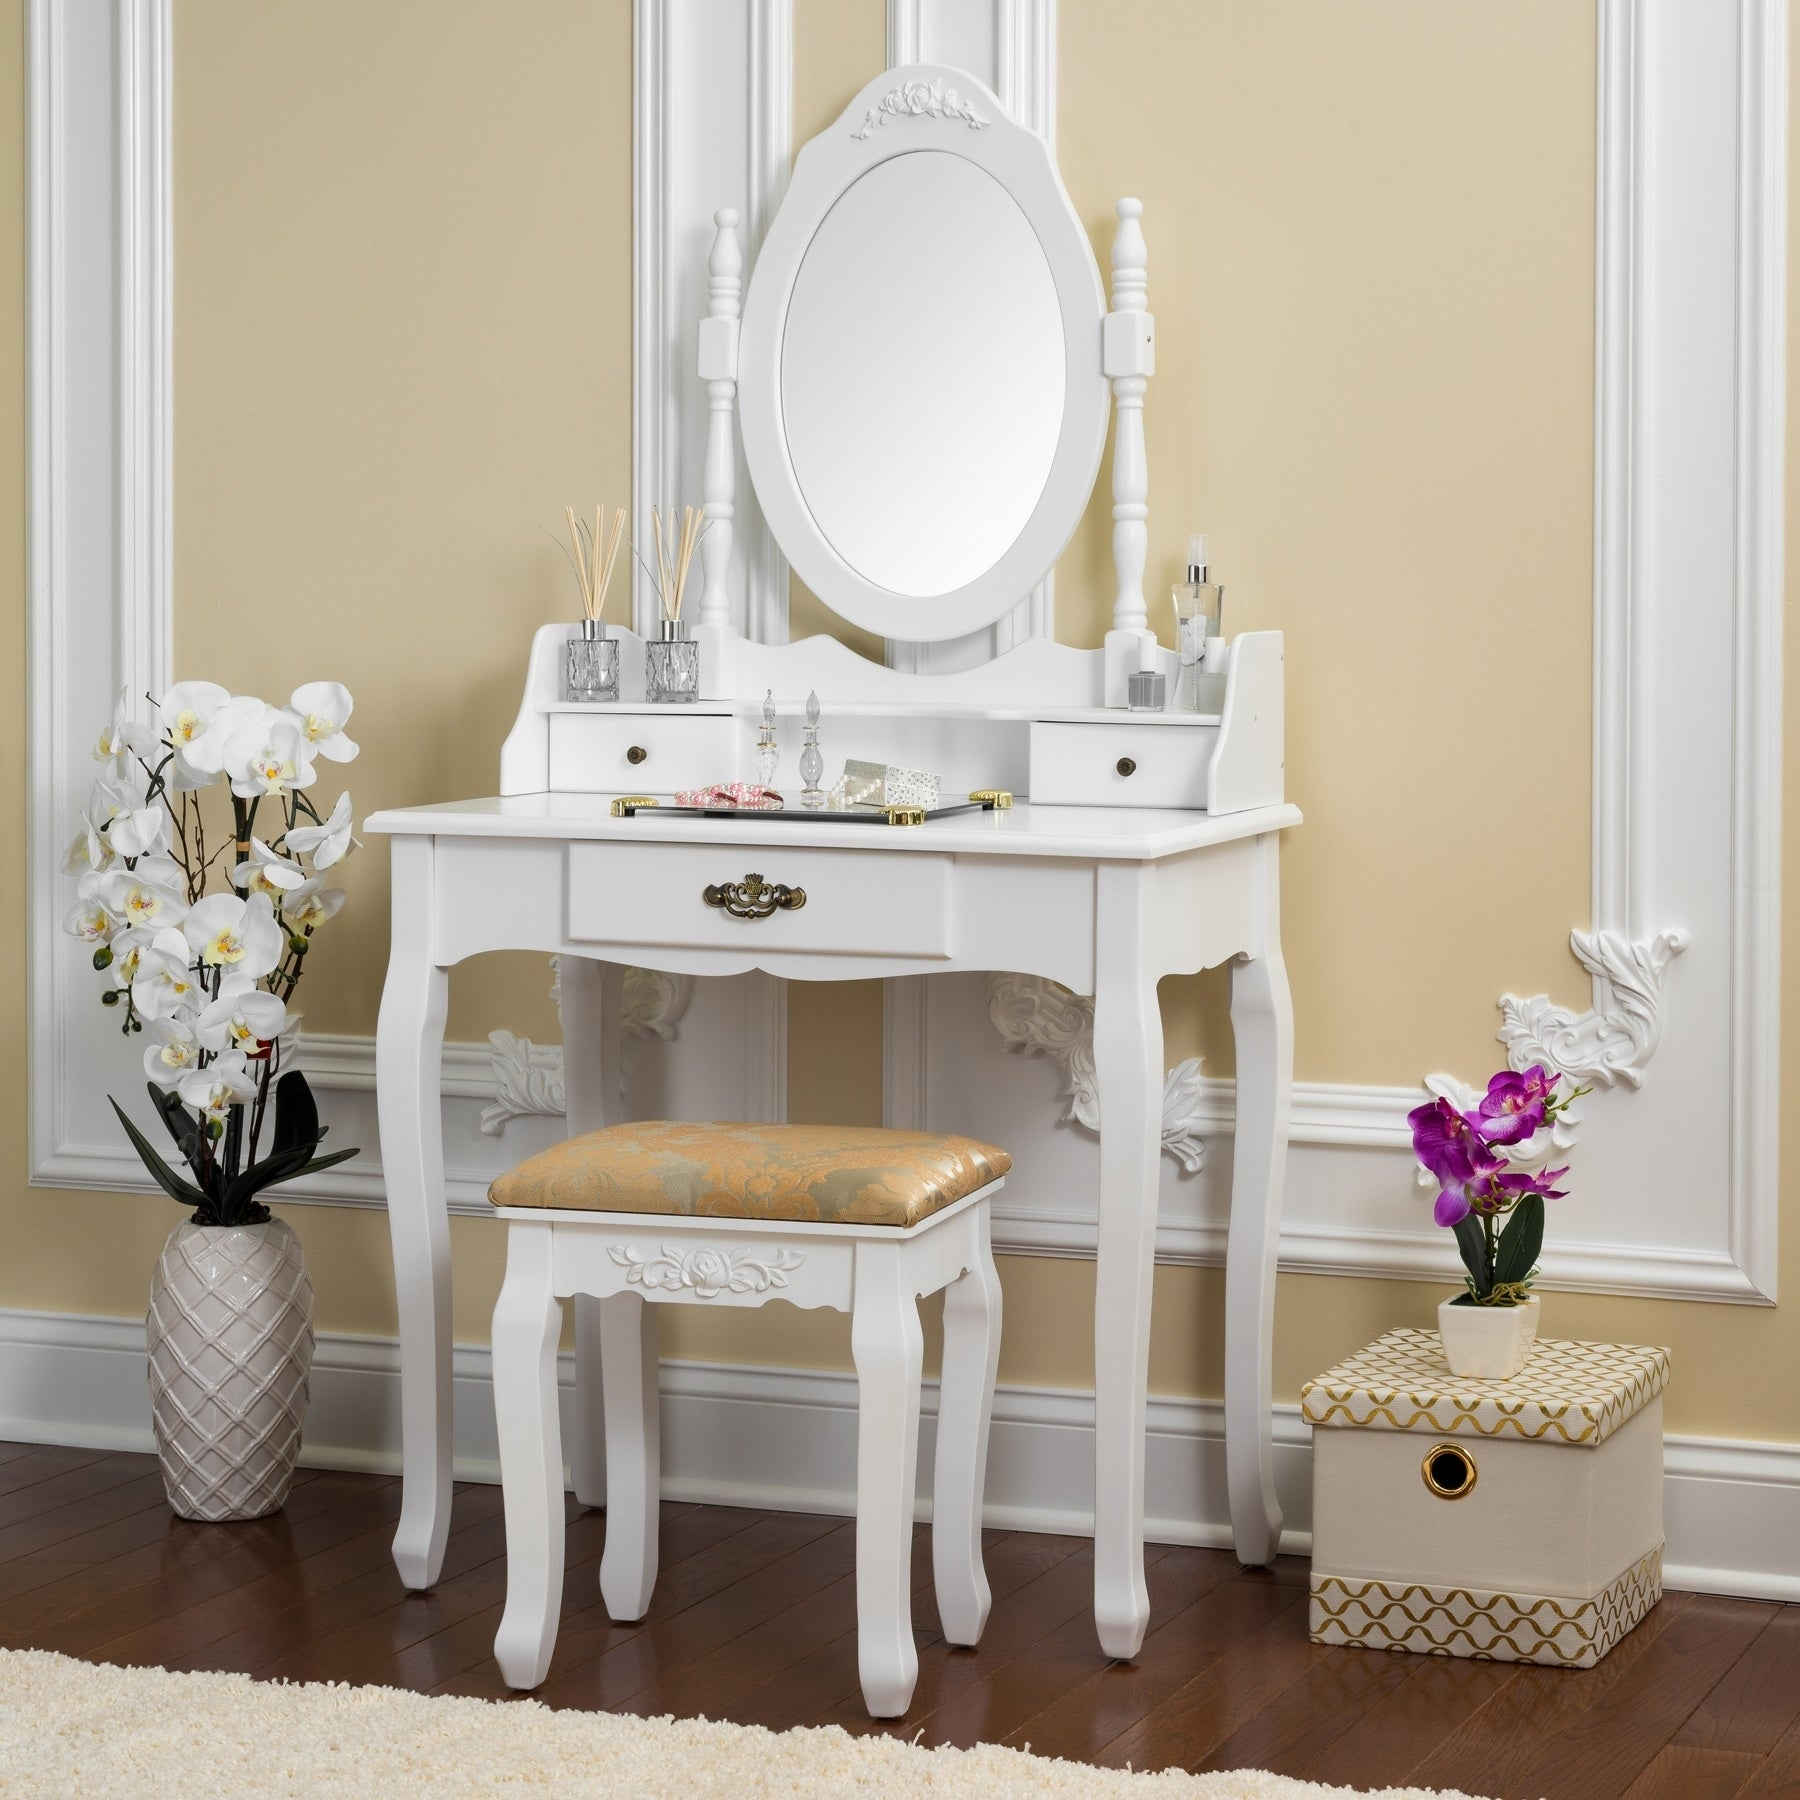 pict and tfast after bedroom wood chair table dressing makeover drawers mirrors mirrored trends with drawer inspiring for shocking vanity makeup popular stand